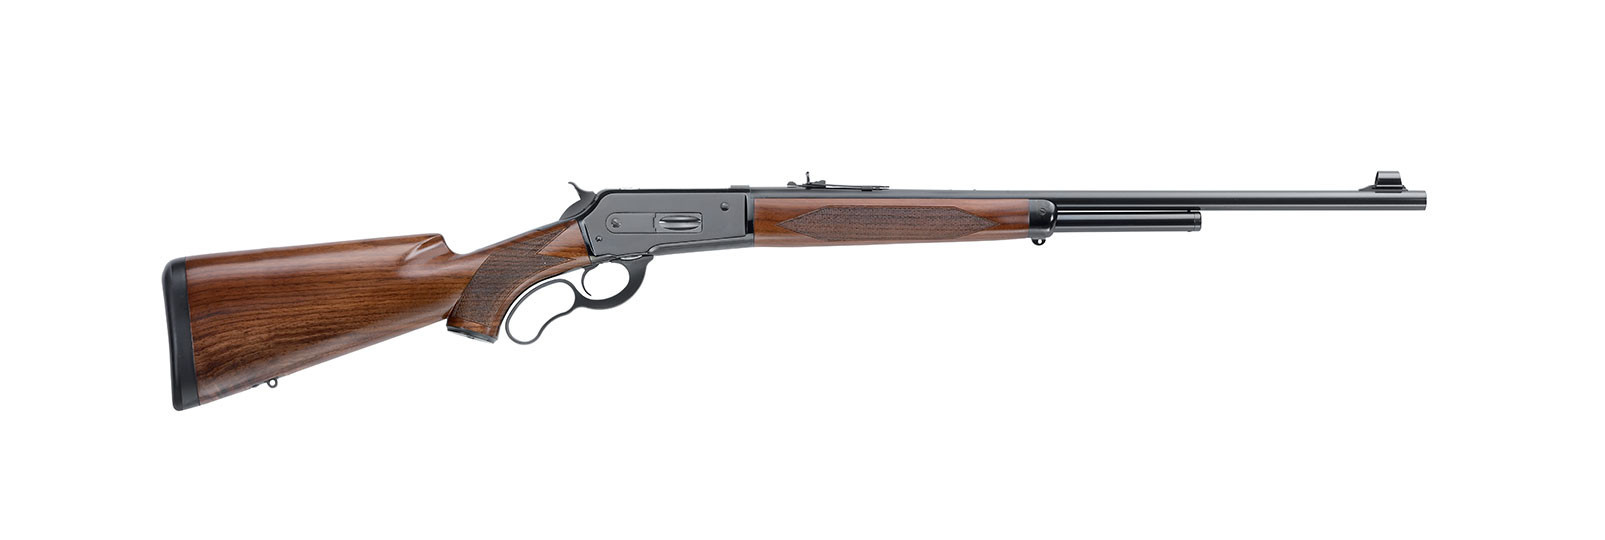 86/71 Lever Action Classic